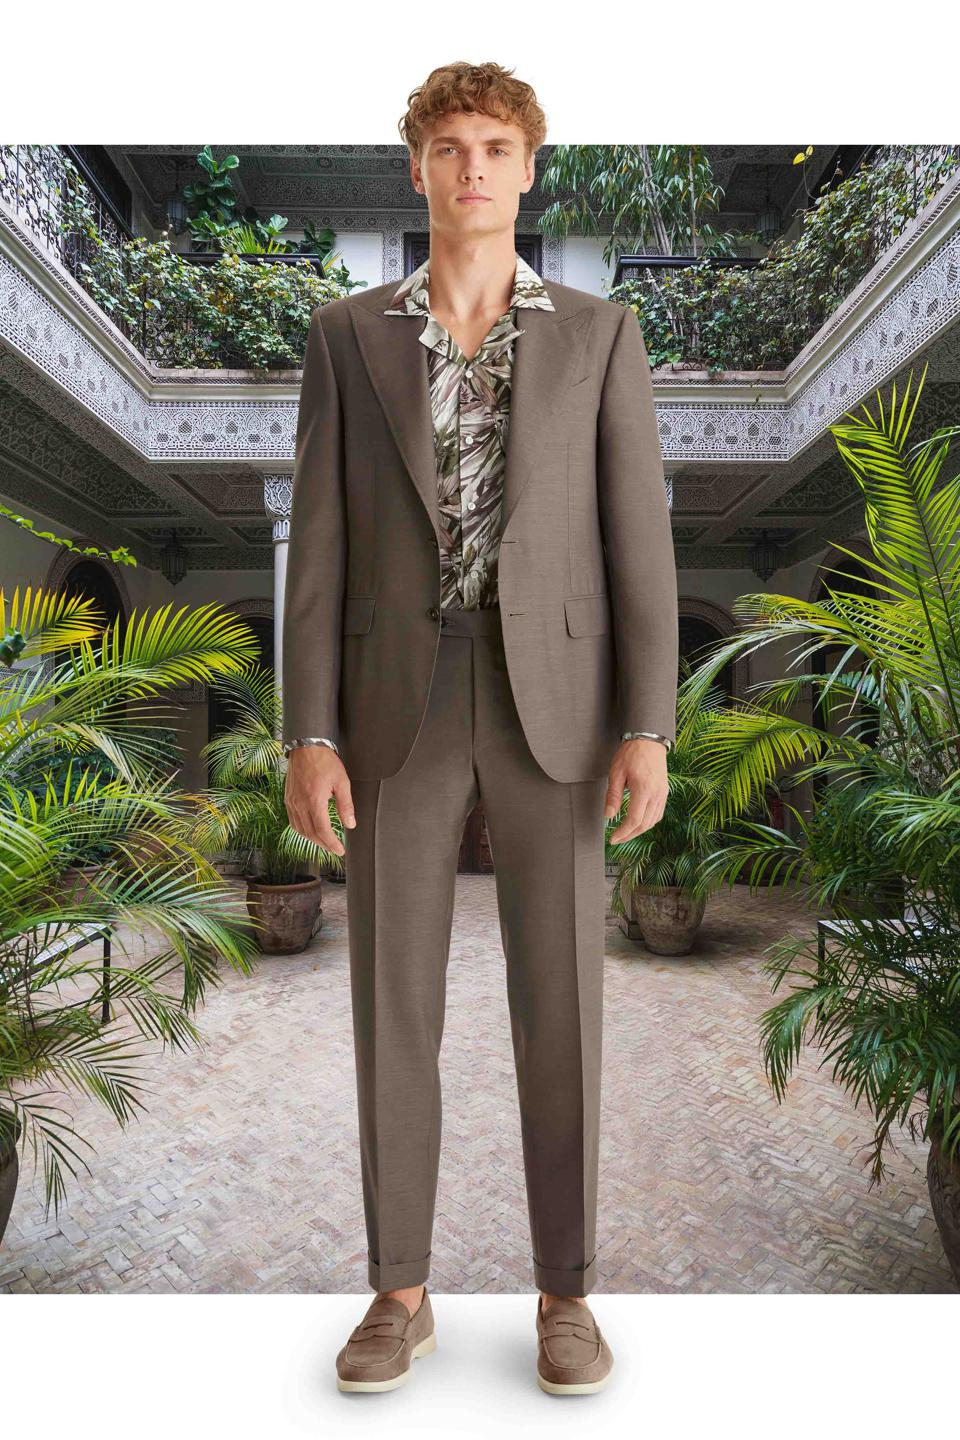 Taupe Wool and Silk Suit From the Exclusive Collection, made in Italy.